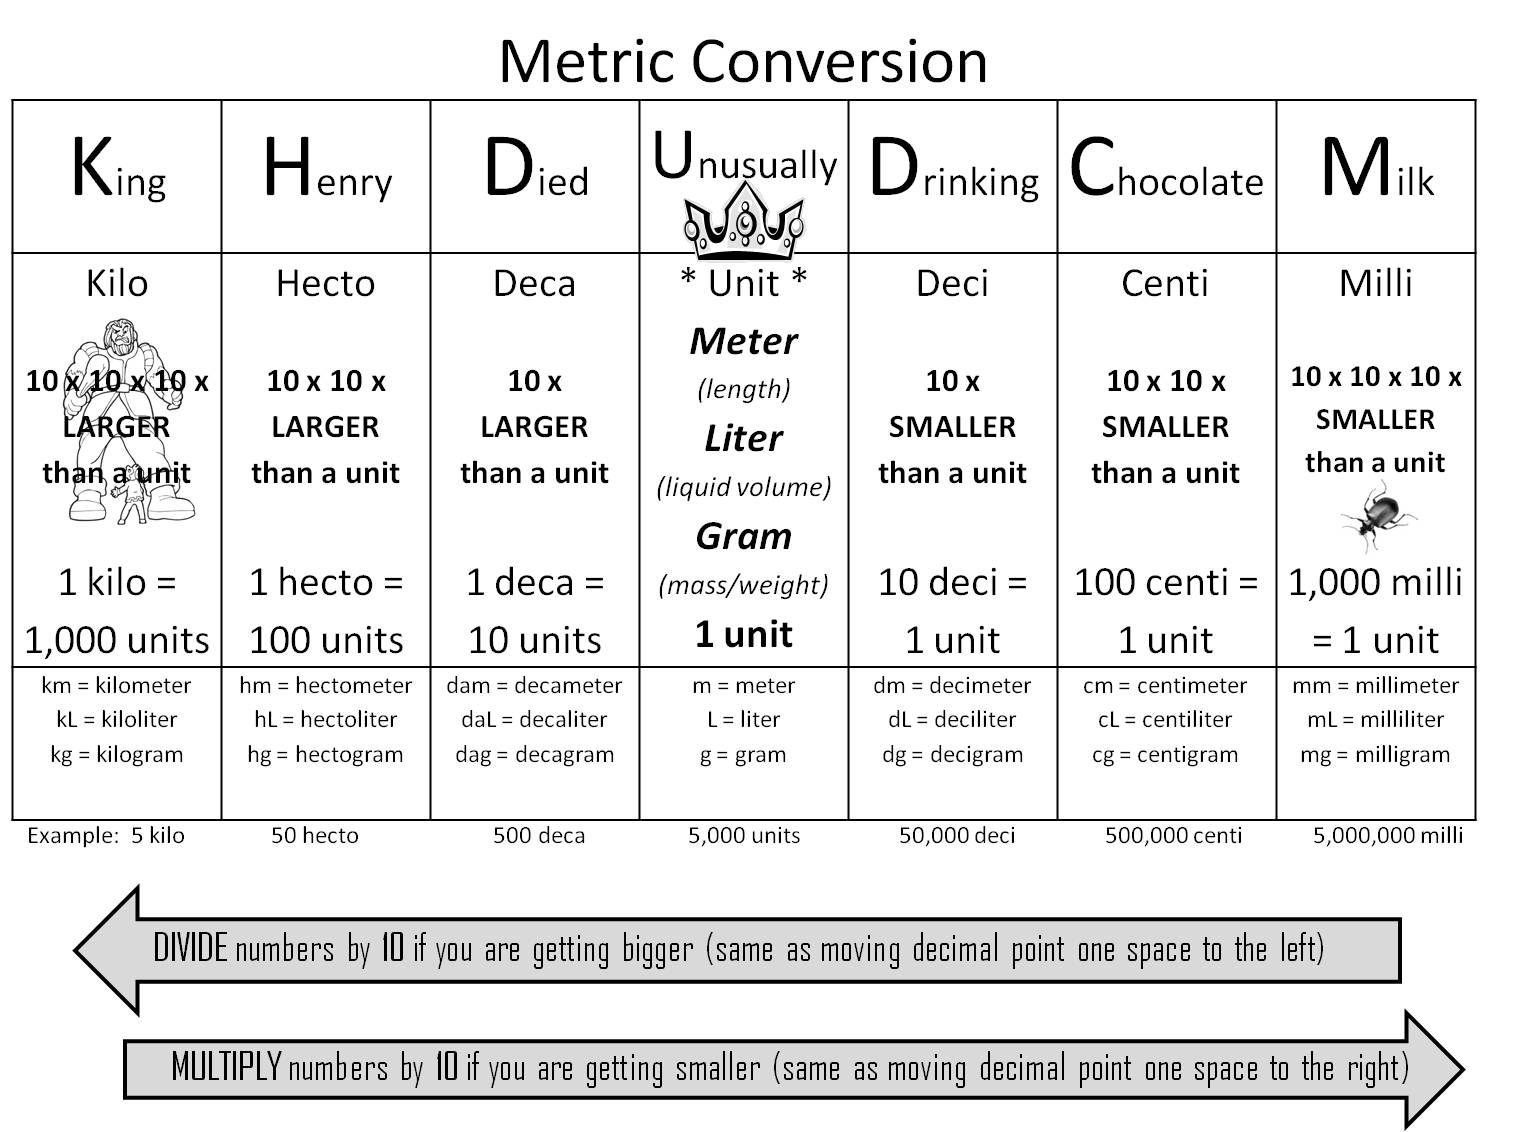 Strong Armor Math Metric Conversion Trick